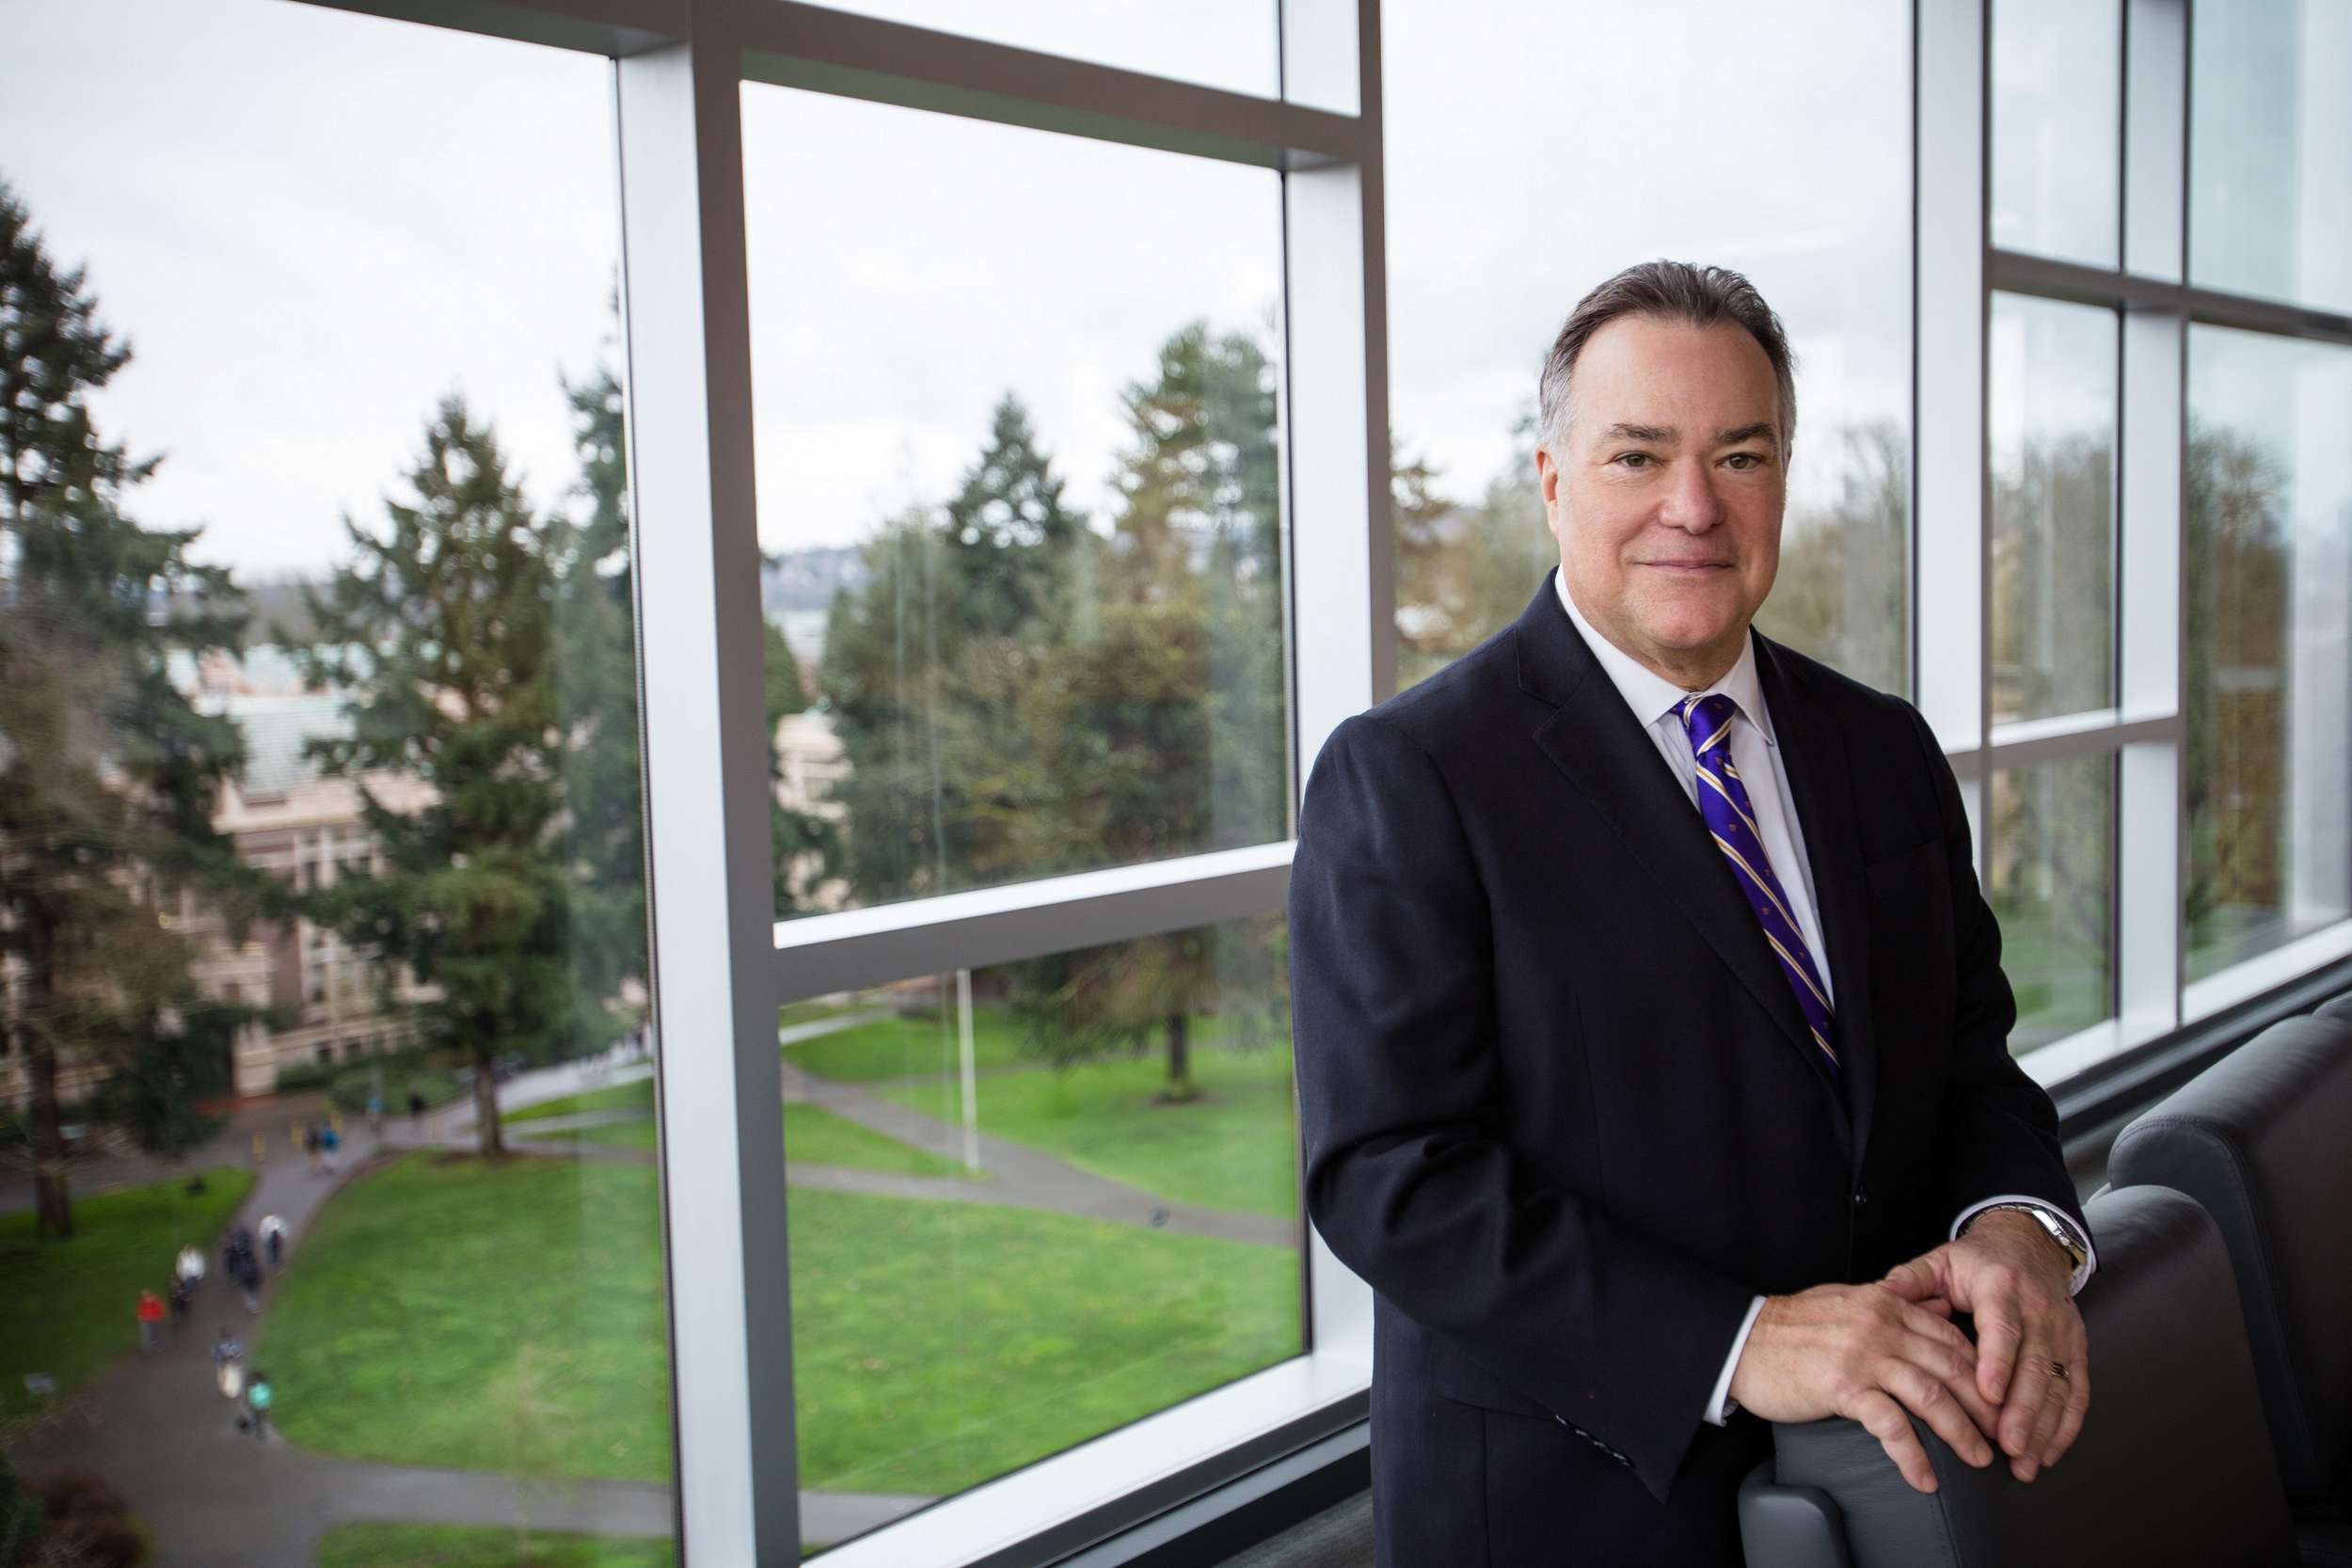 environmental portrait of the president of UW Foster School of Business